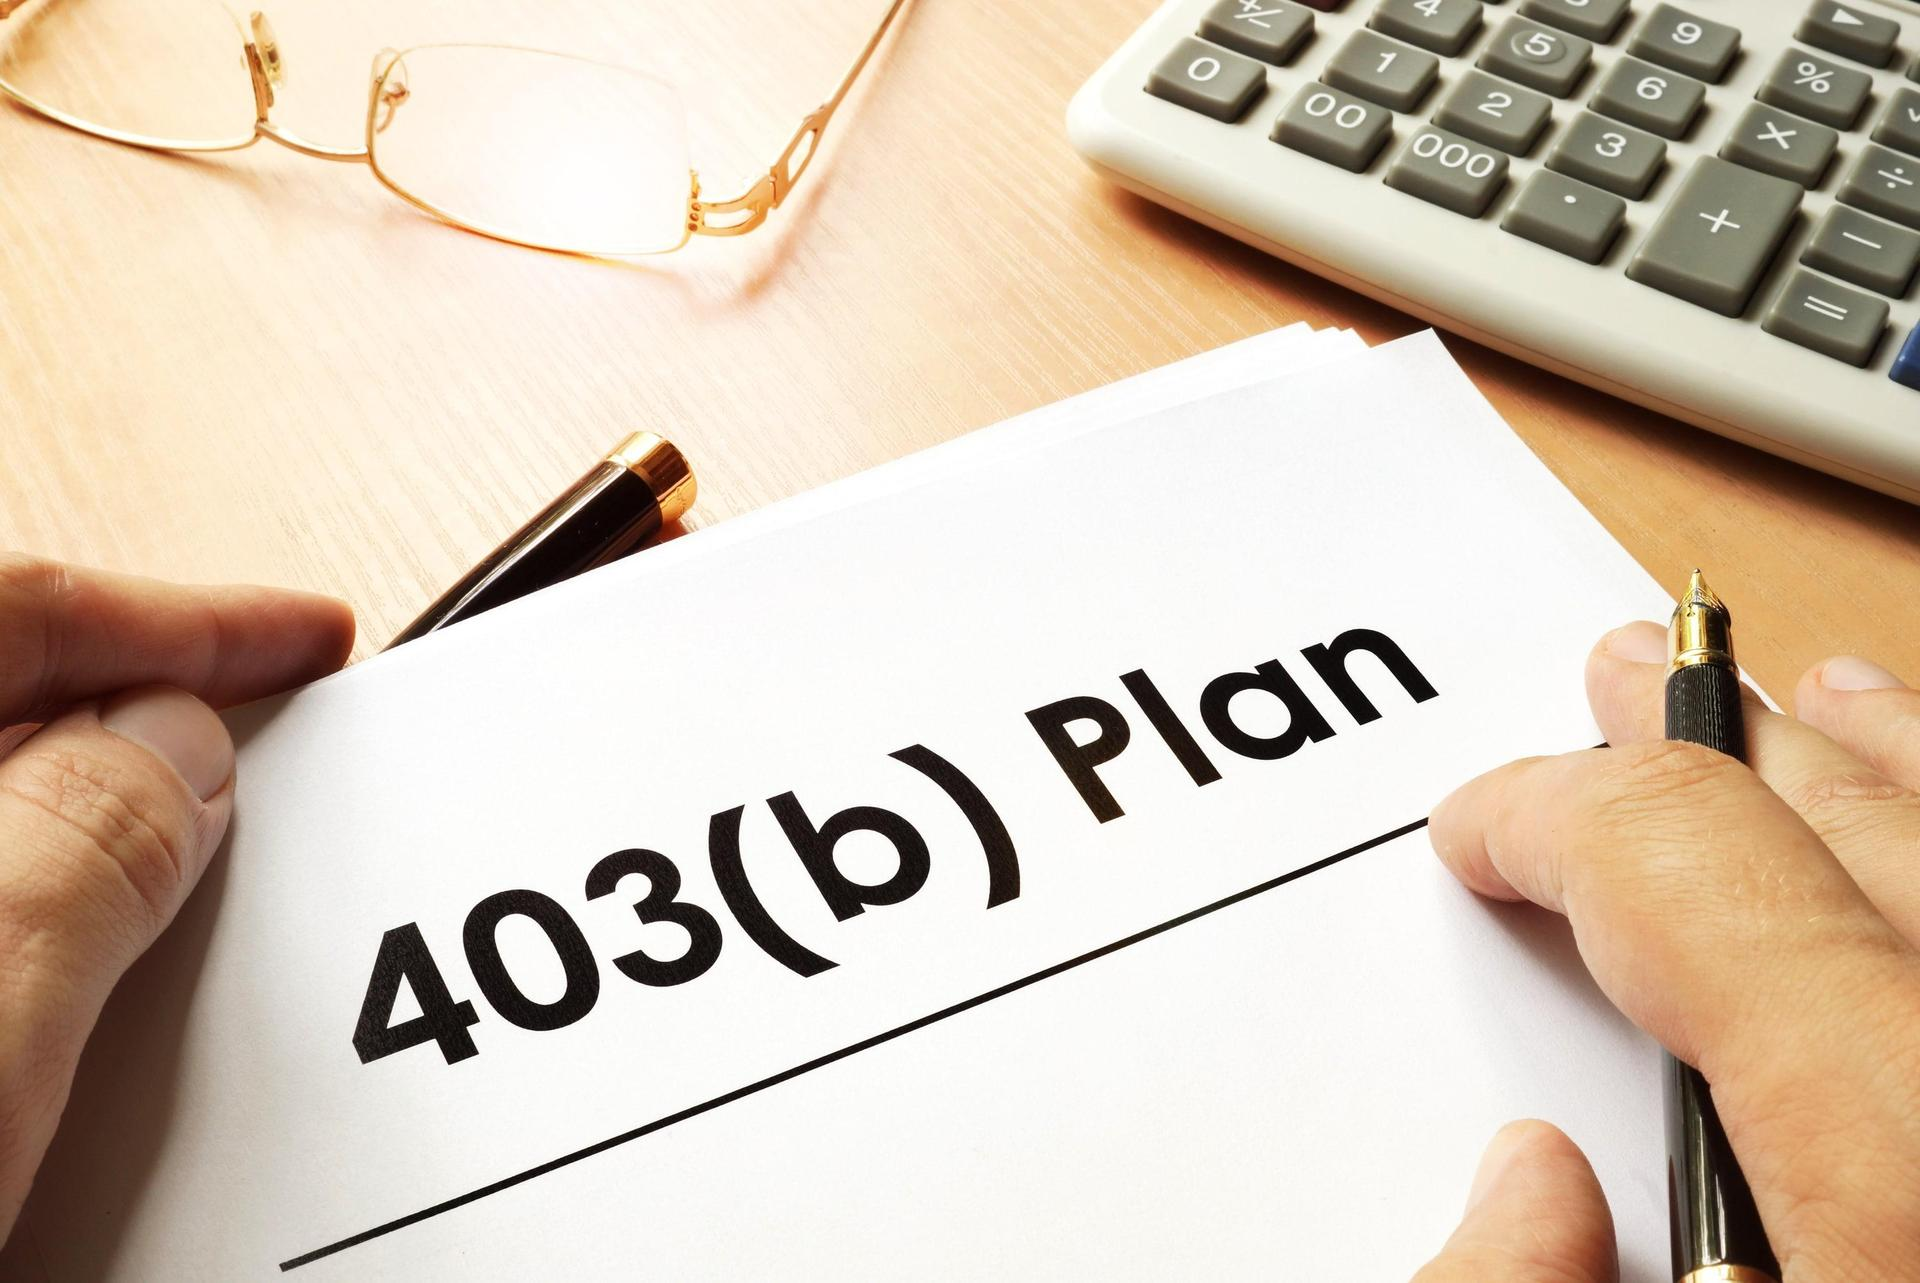 Image of 403(b) Plan by the hands of an investor.